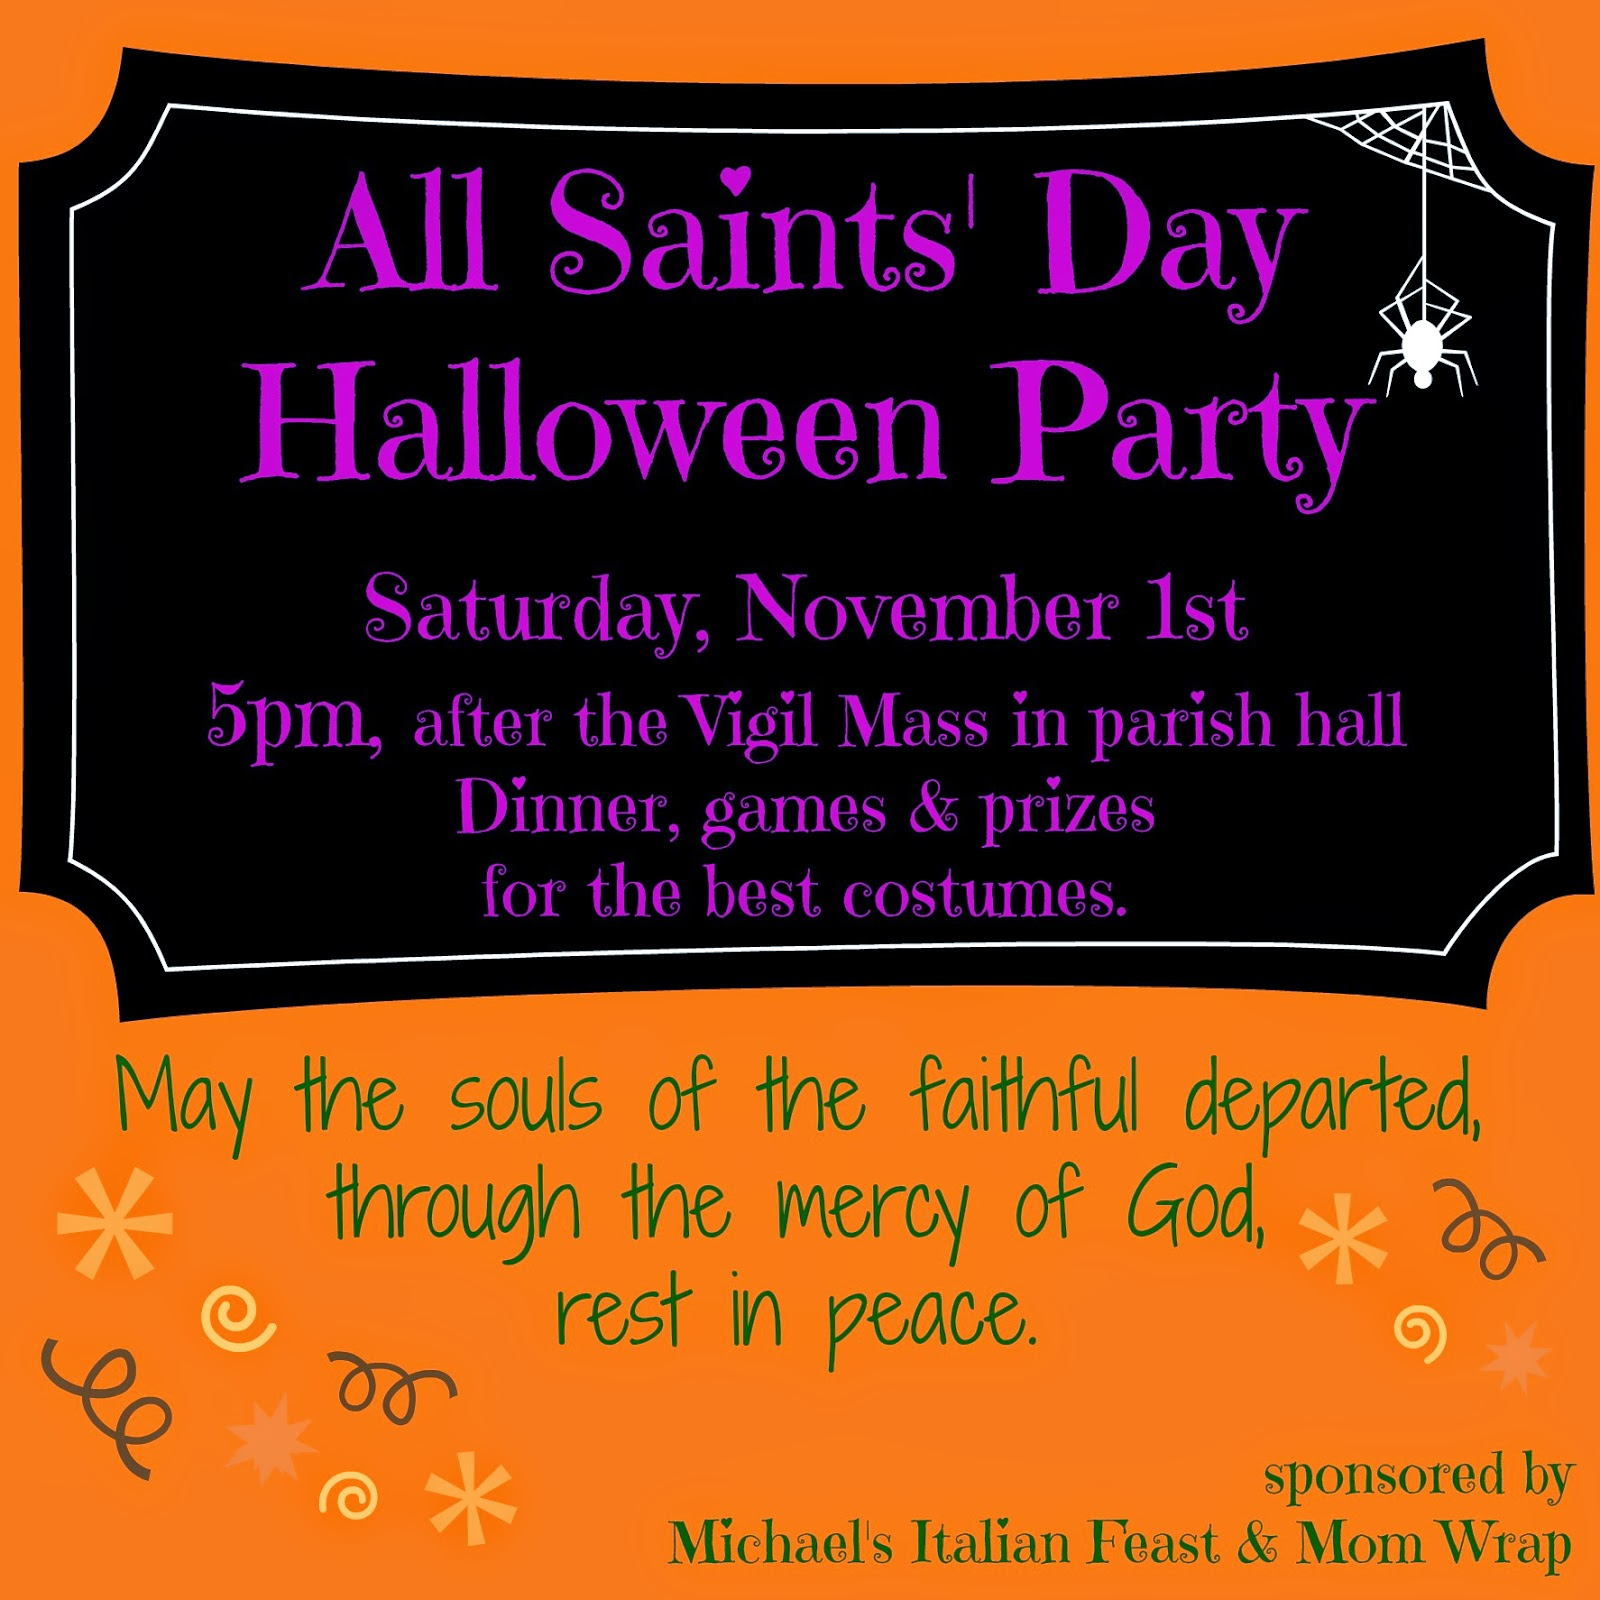 all saints day party recap